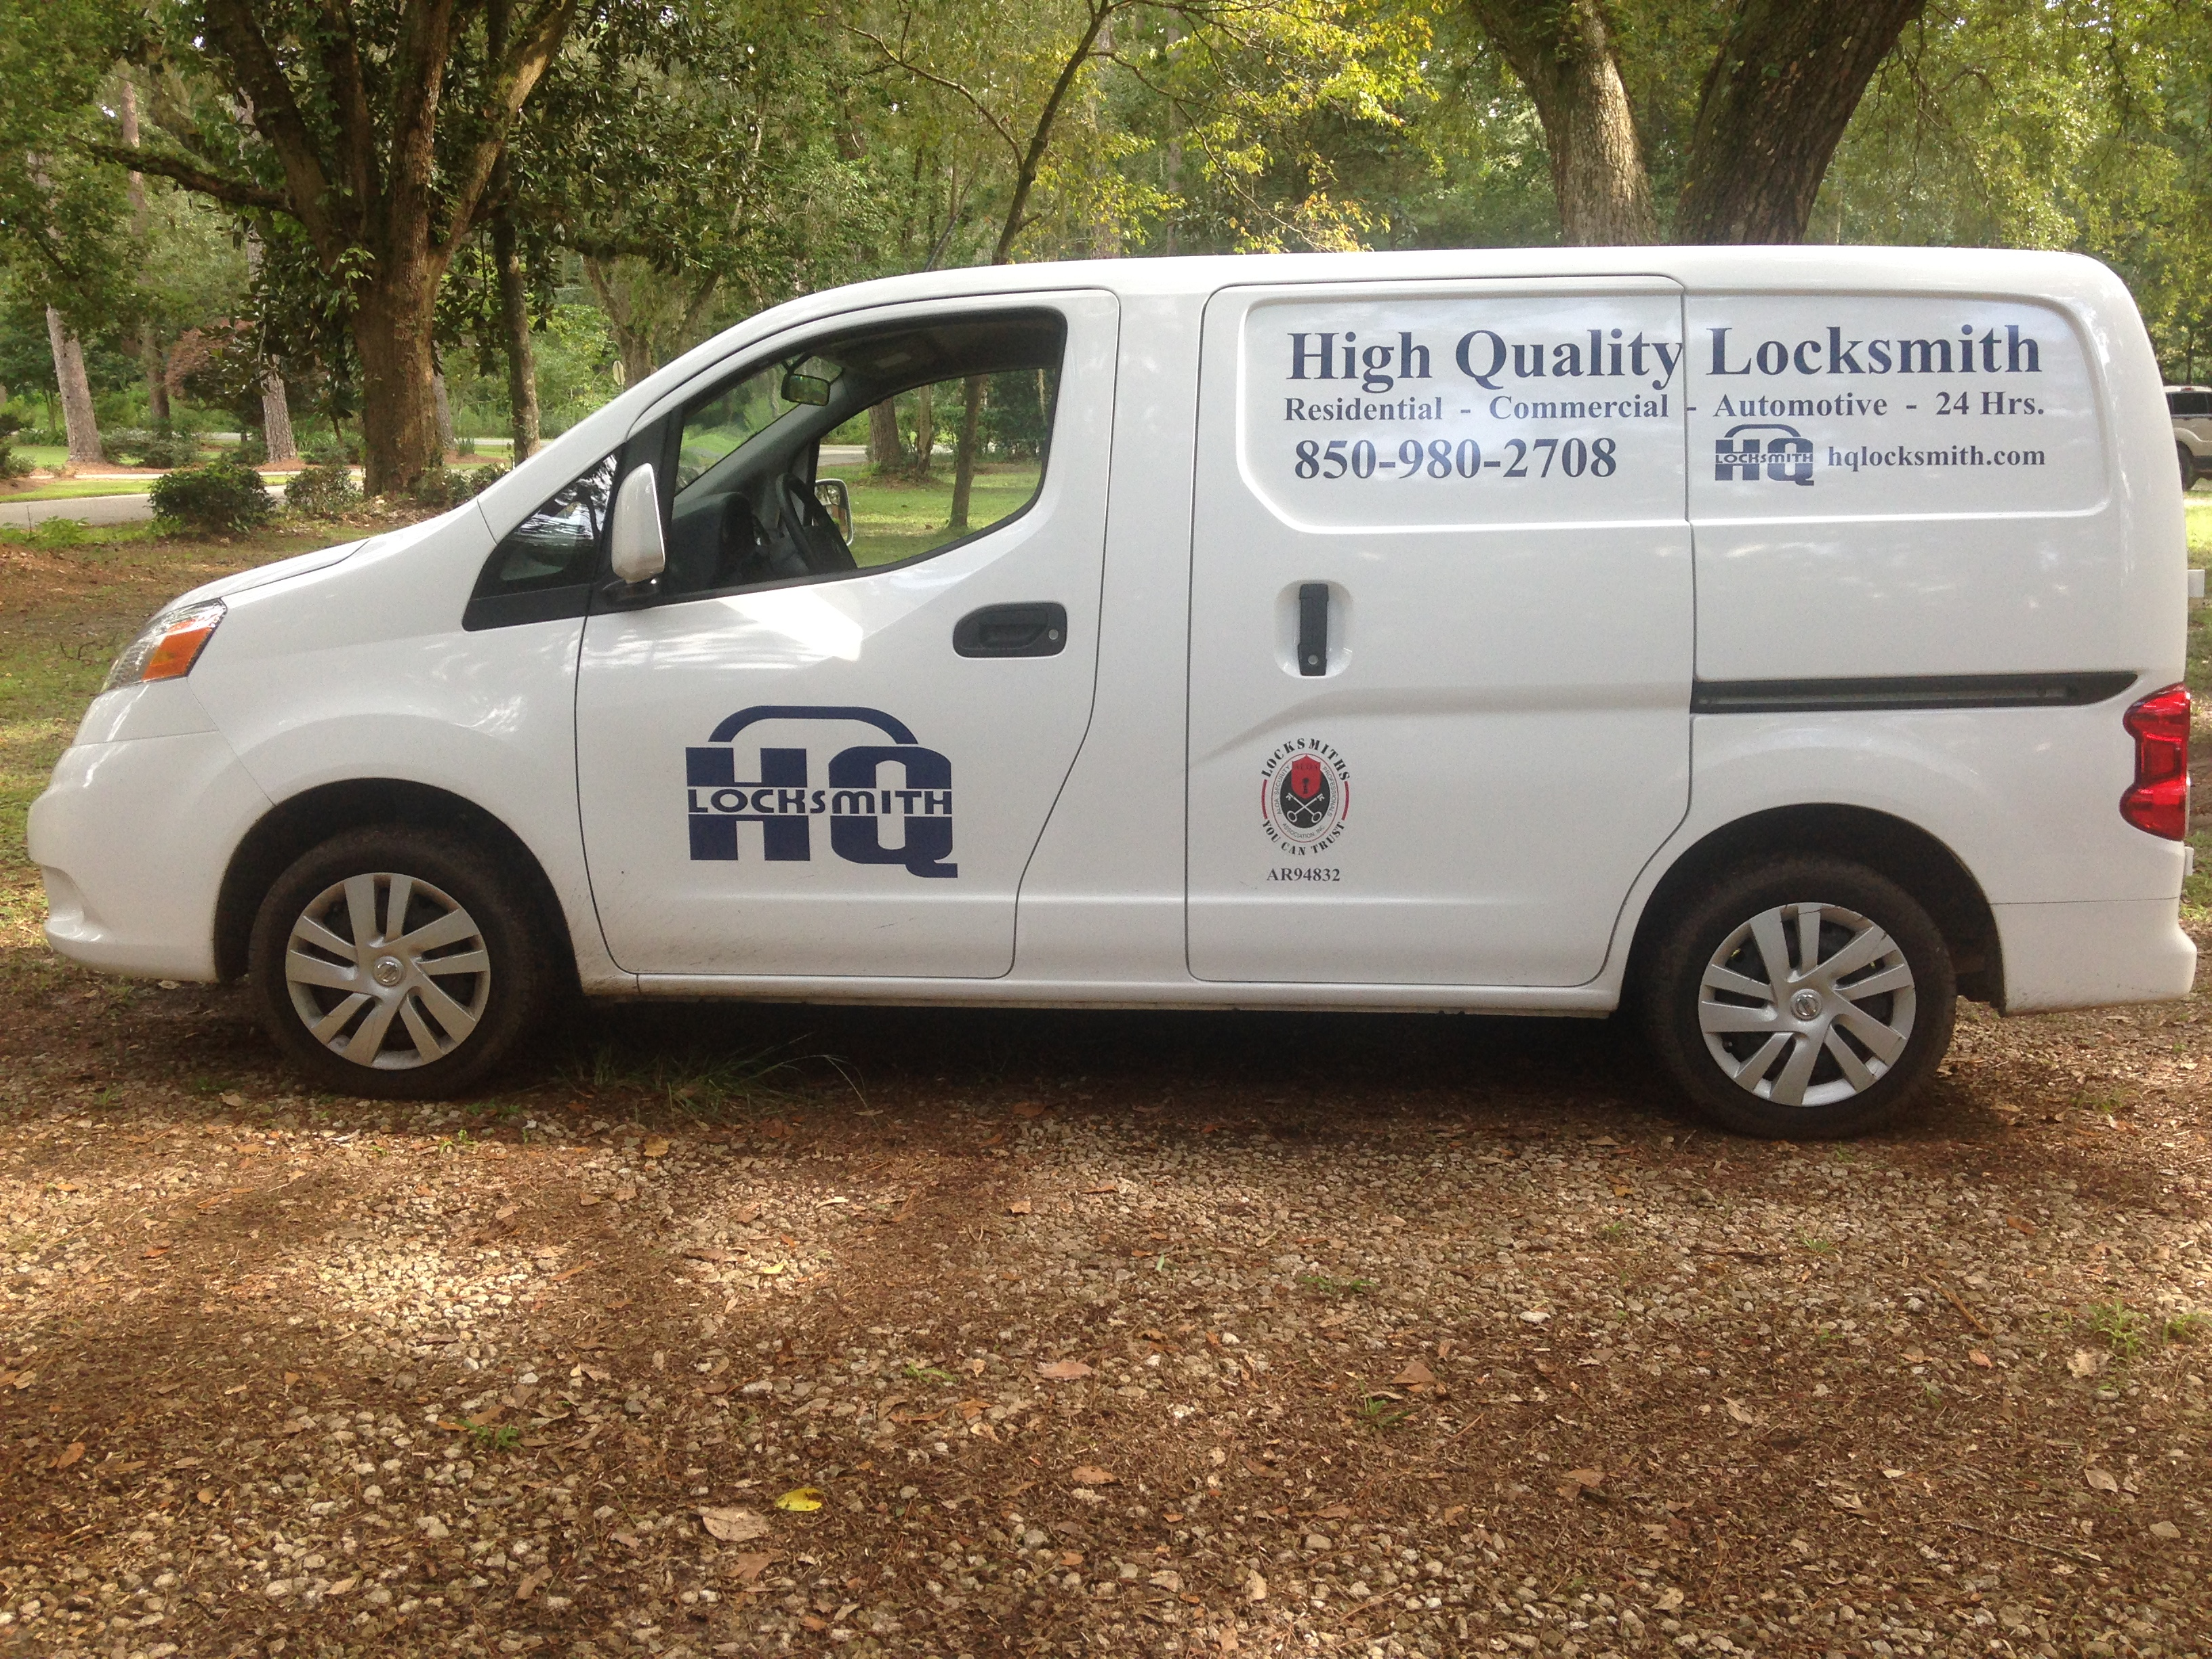 Locksmith Tallahassee - High Quality Locksmith is a fast